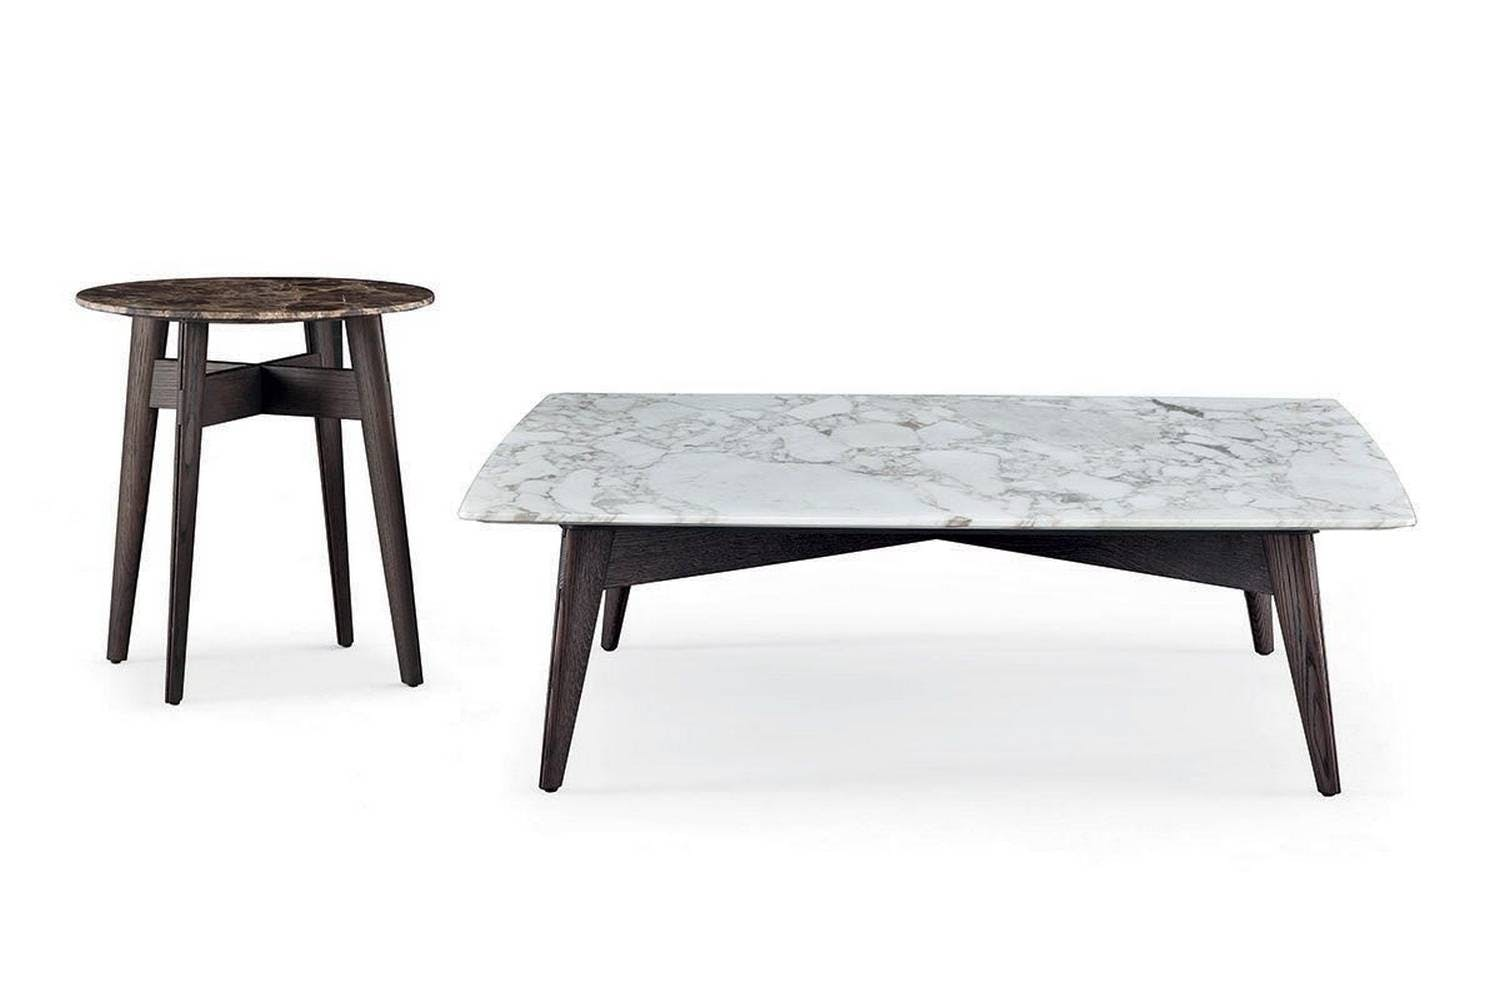 Bigger coffee table by carlo colombo for poliform for Other uses for a coffee table